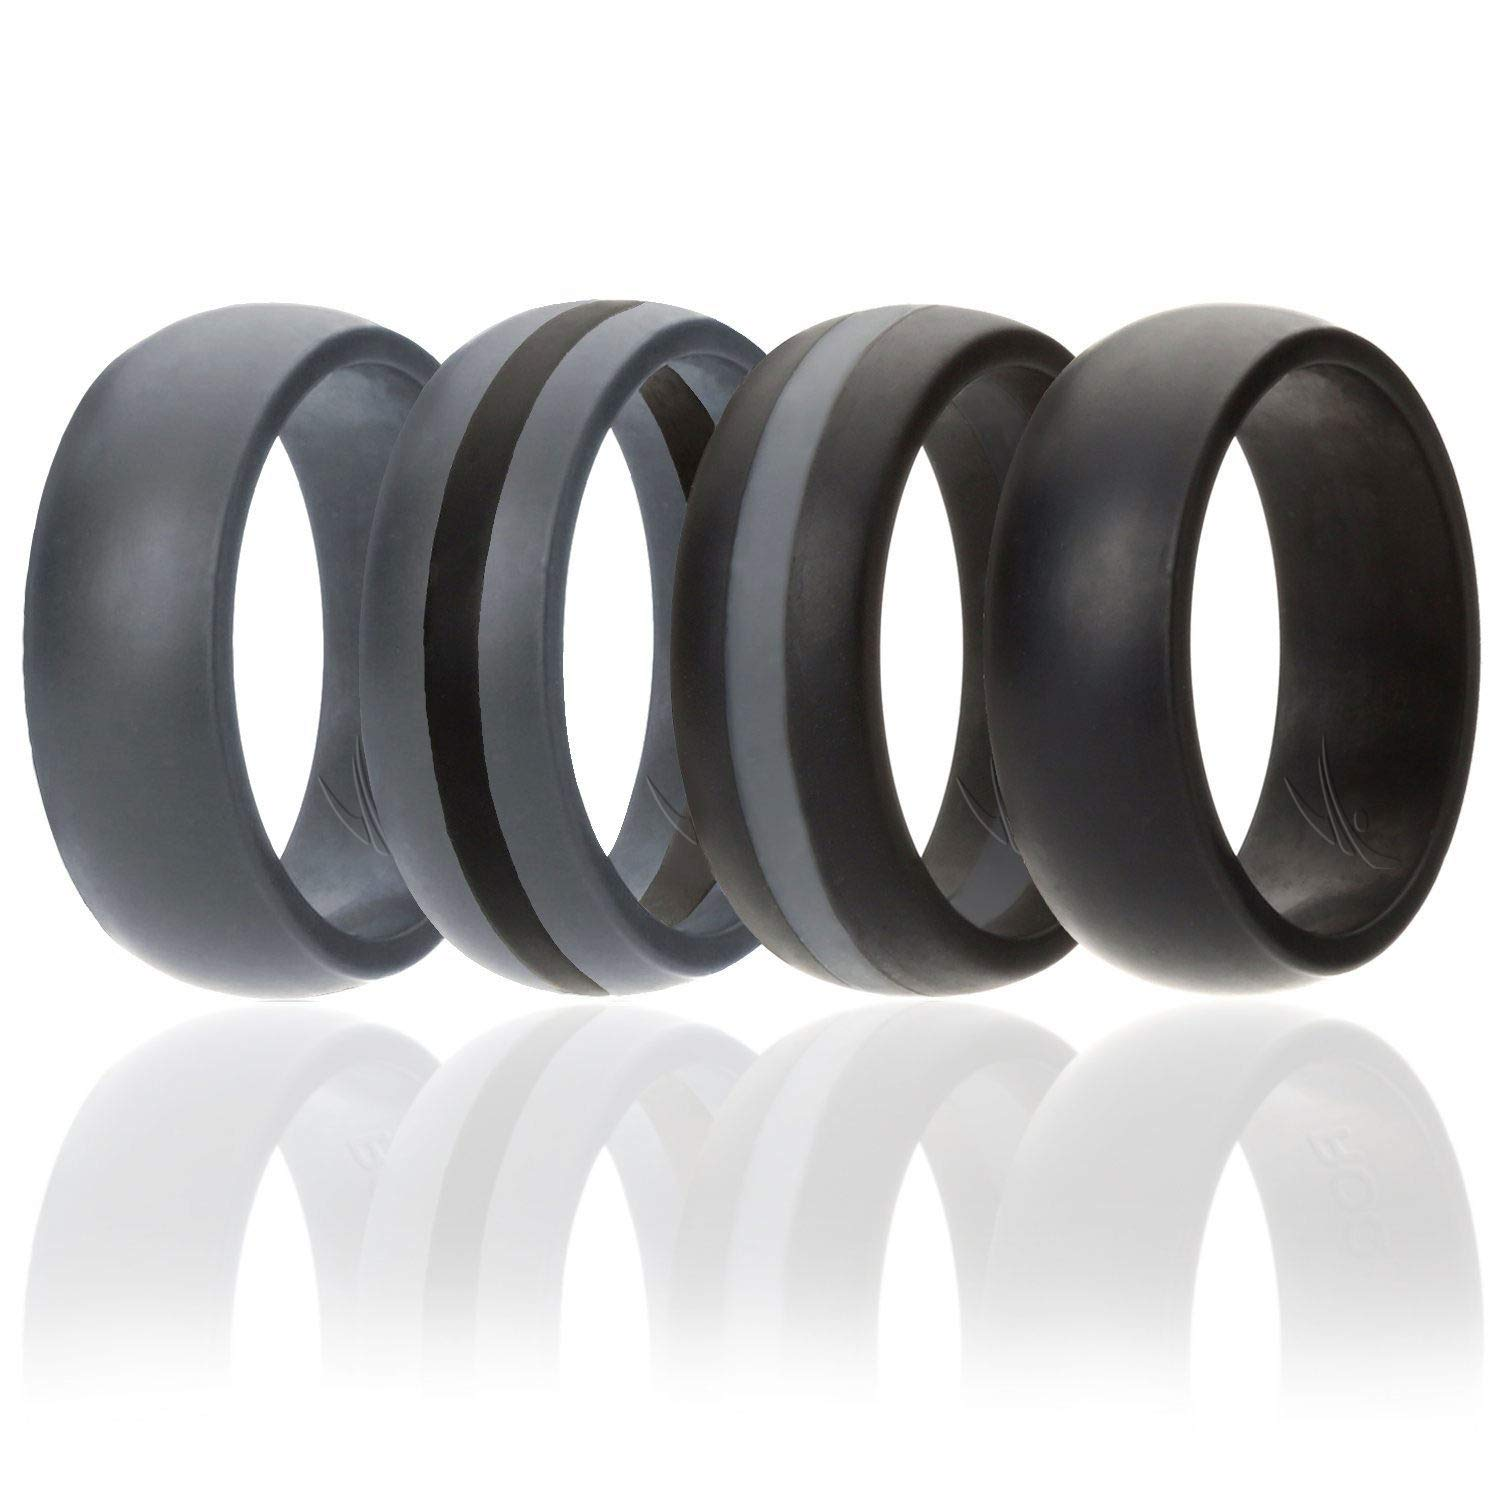 ROQ Silicone Wedding Ring For Men, 4 Pack Silicone Rubber Band - Black, Black With Thin Grey Stripe, Grey With Black Stripe, Grey, Size 12